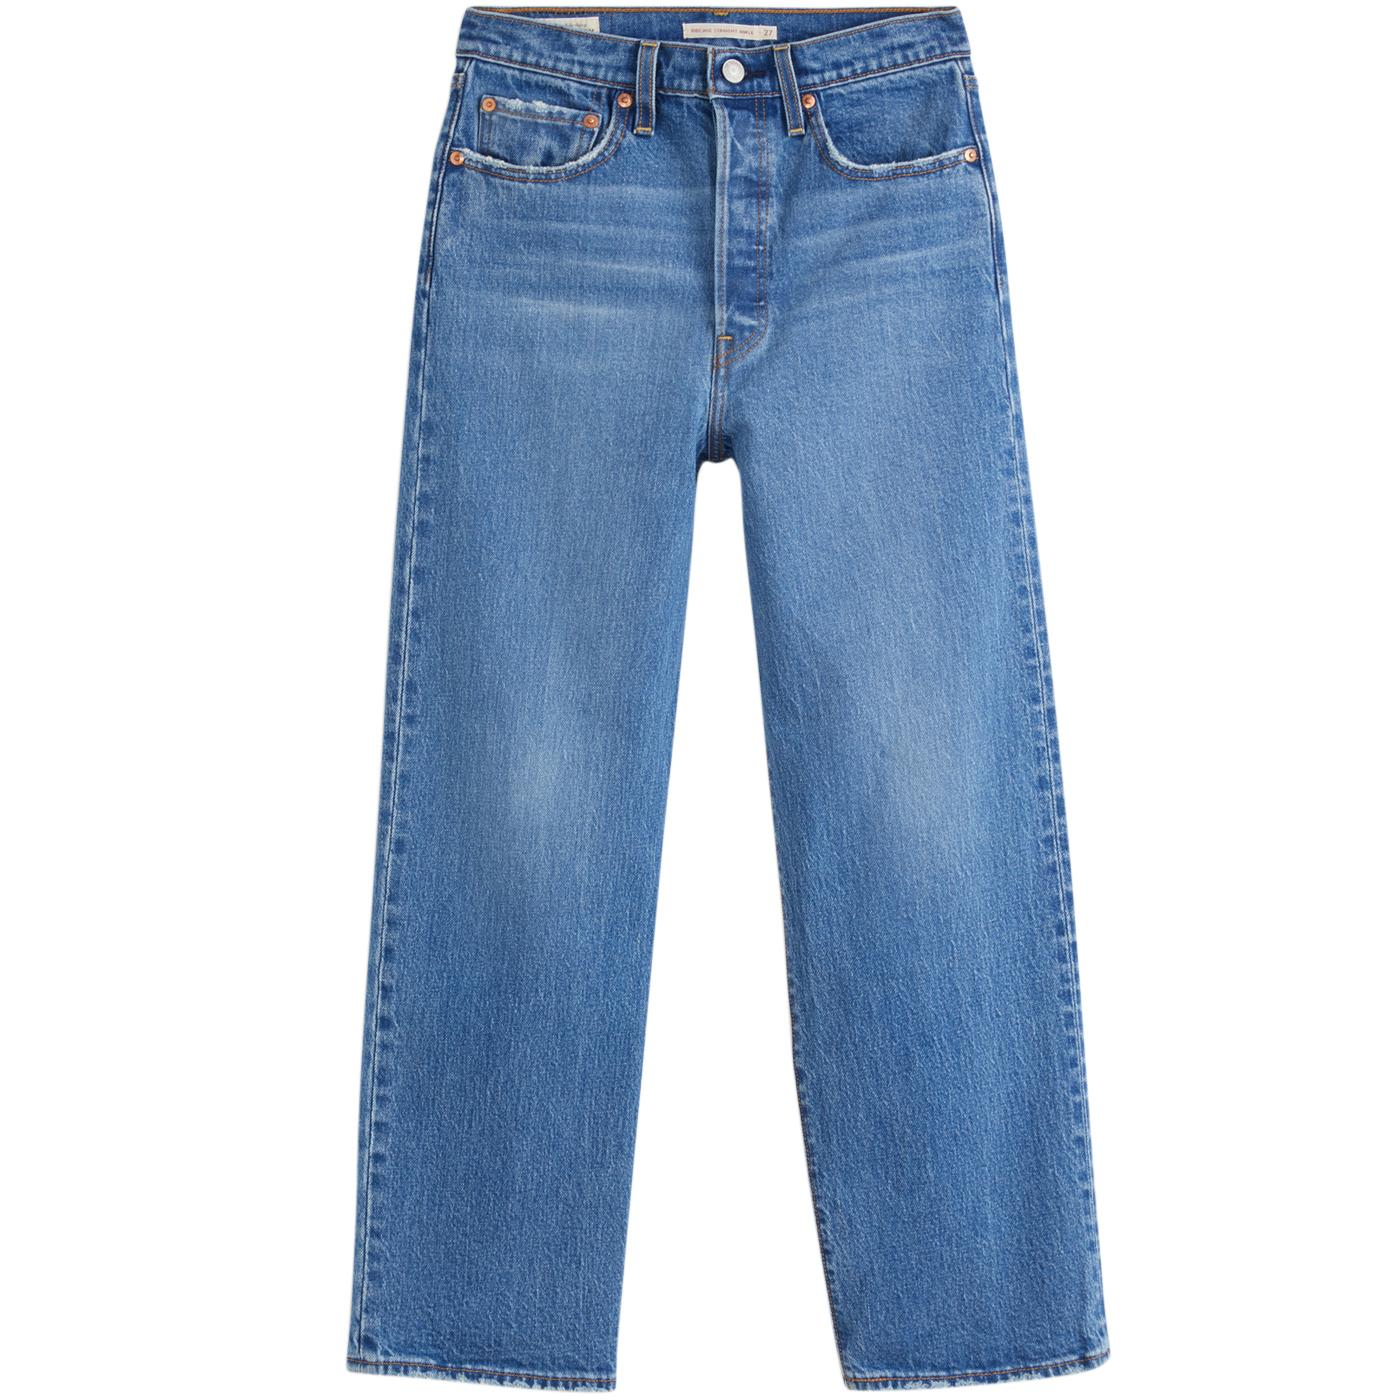 LEVI'S Ribcage Women's Straight High Rise Jeans JT